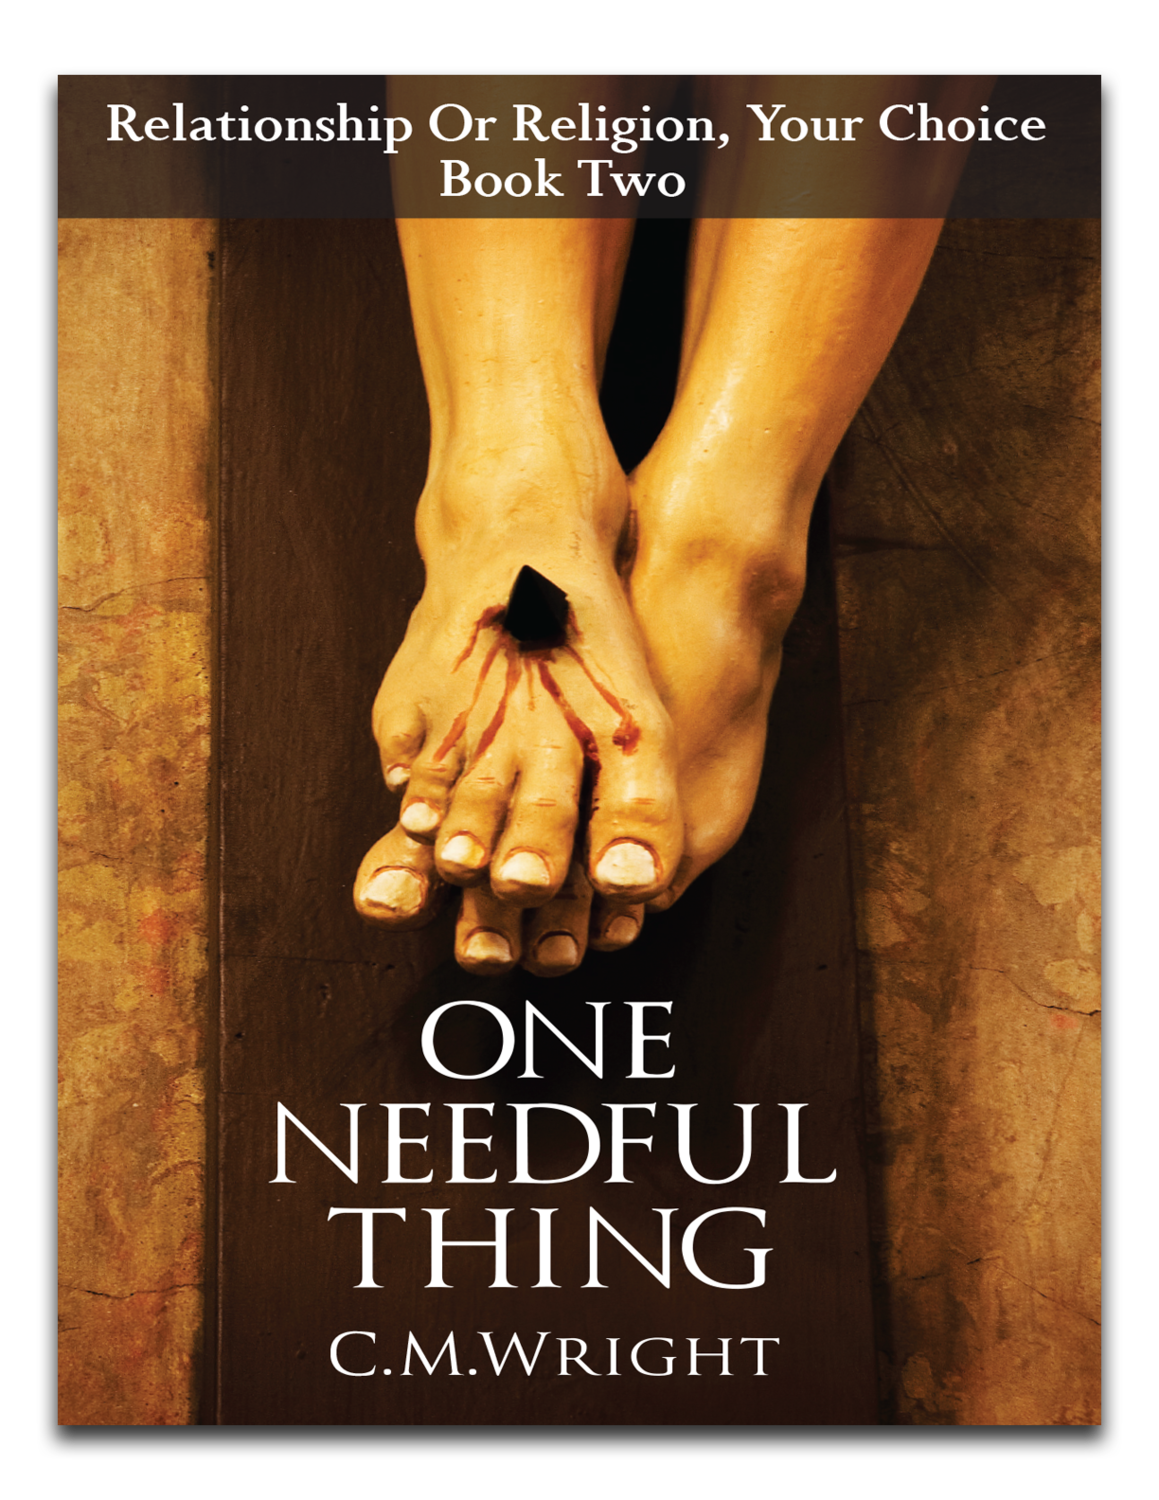 One Needful Thing By Chester M. Wright